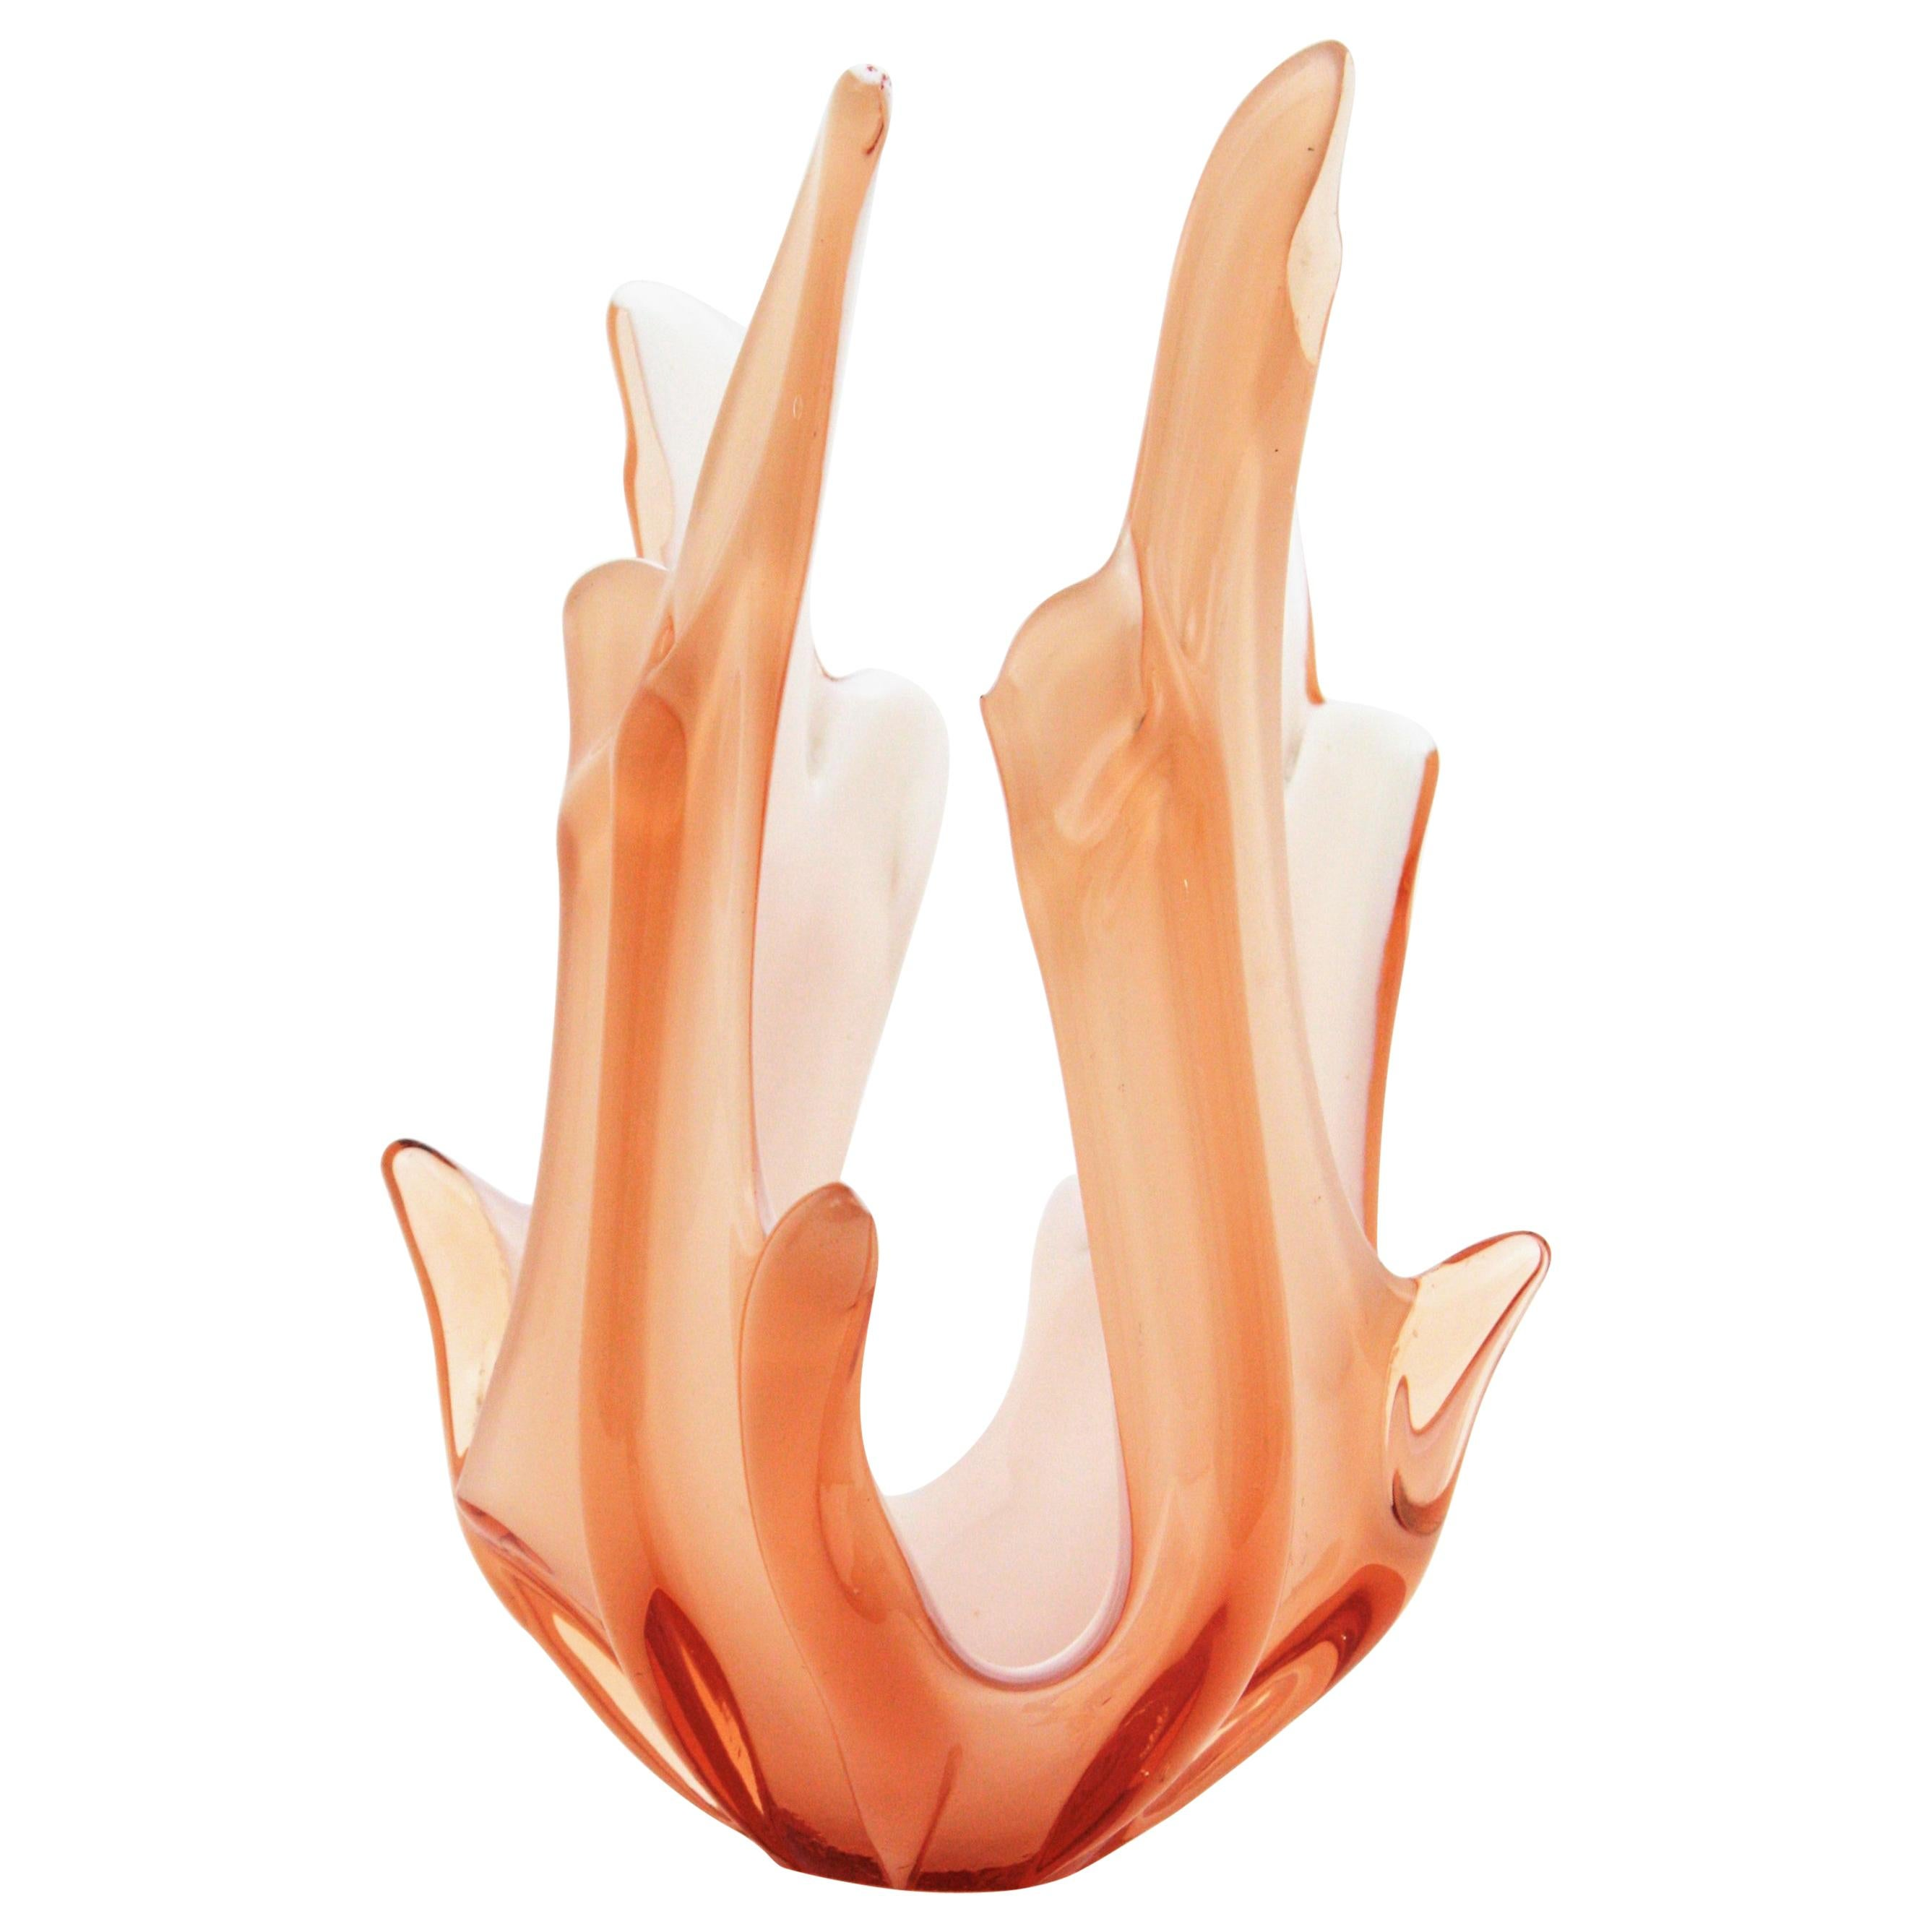 Peach Pink and White Murano Art Glass Centerpiece Vase